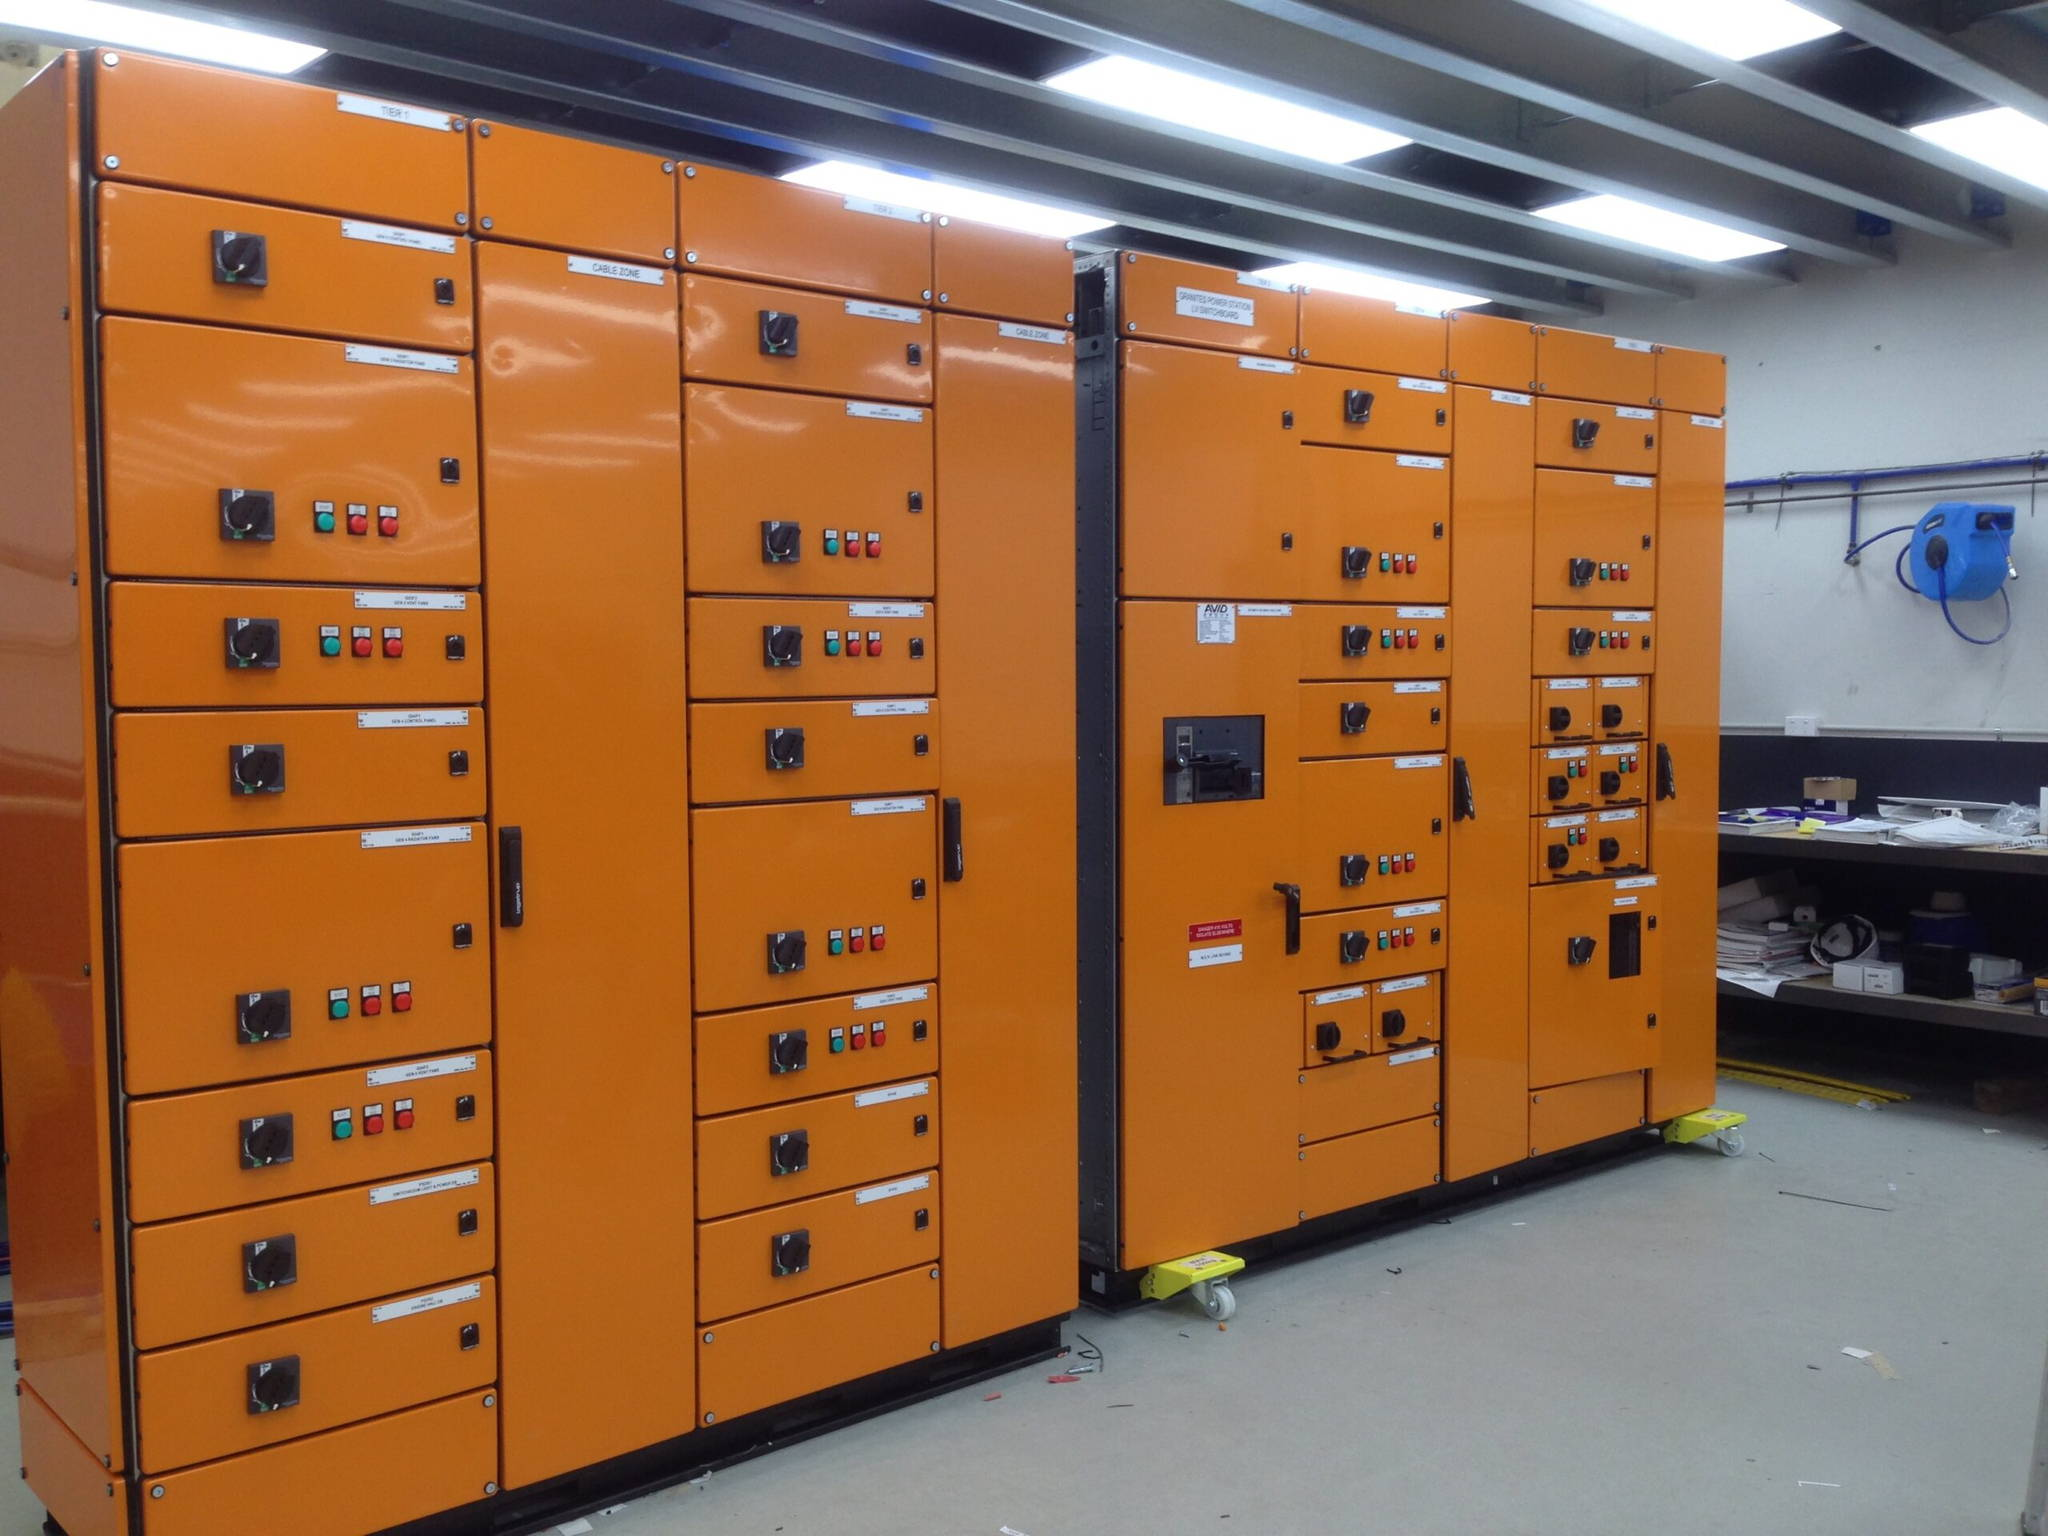 Logstrup Switchboard in orange for a process industry. Case picture from process industries which Logstrup Steel has manufactured its switchboard and Switchgear to.